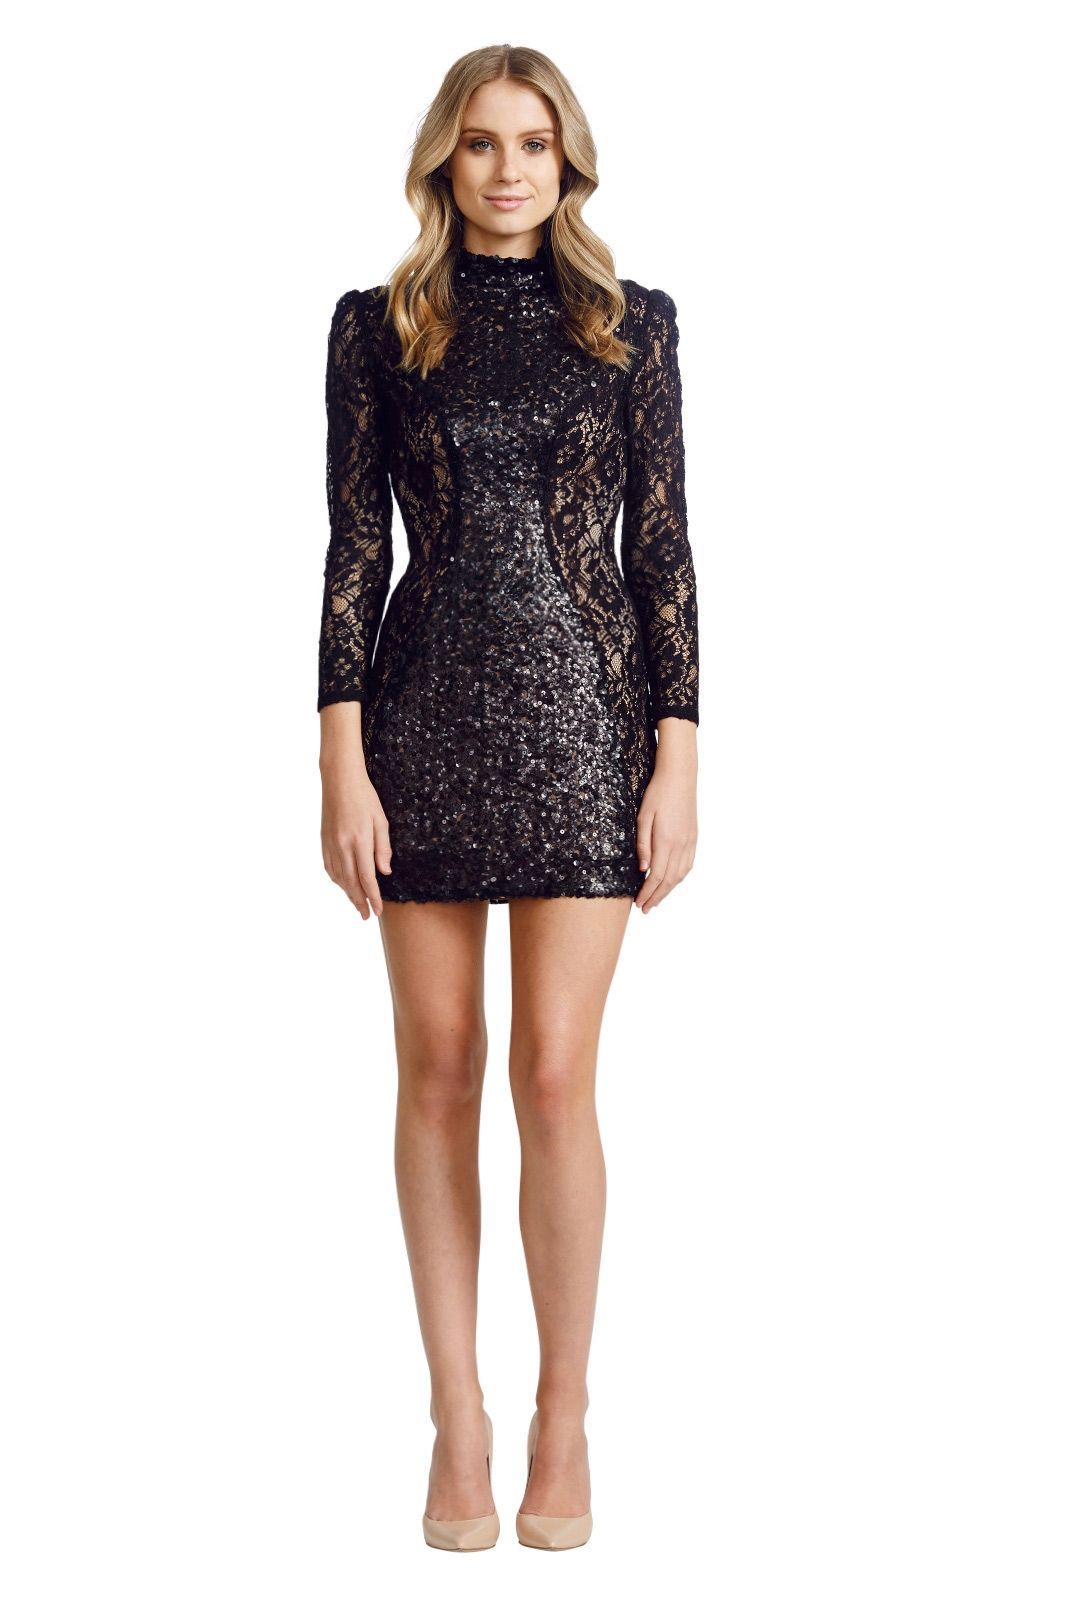 Jayson Brunsdon - Opulent Dress - Black - Front